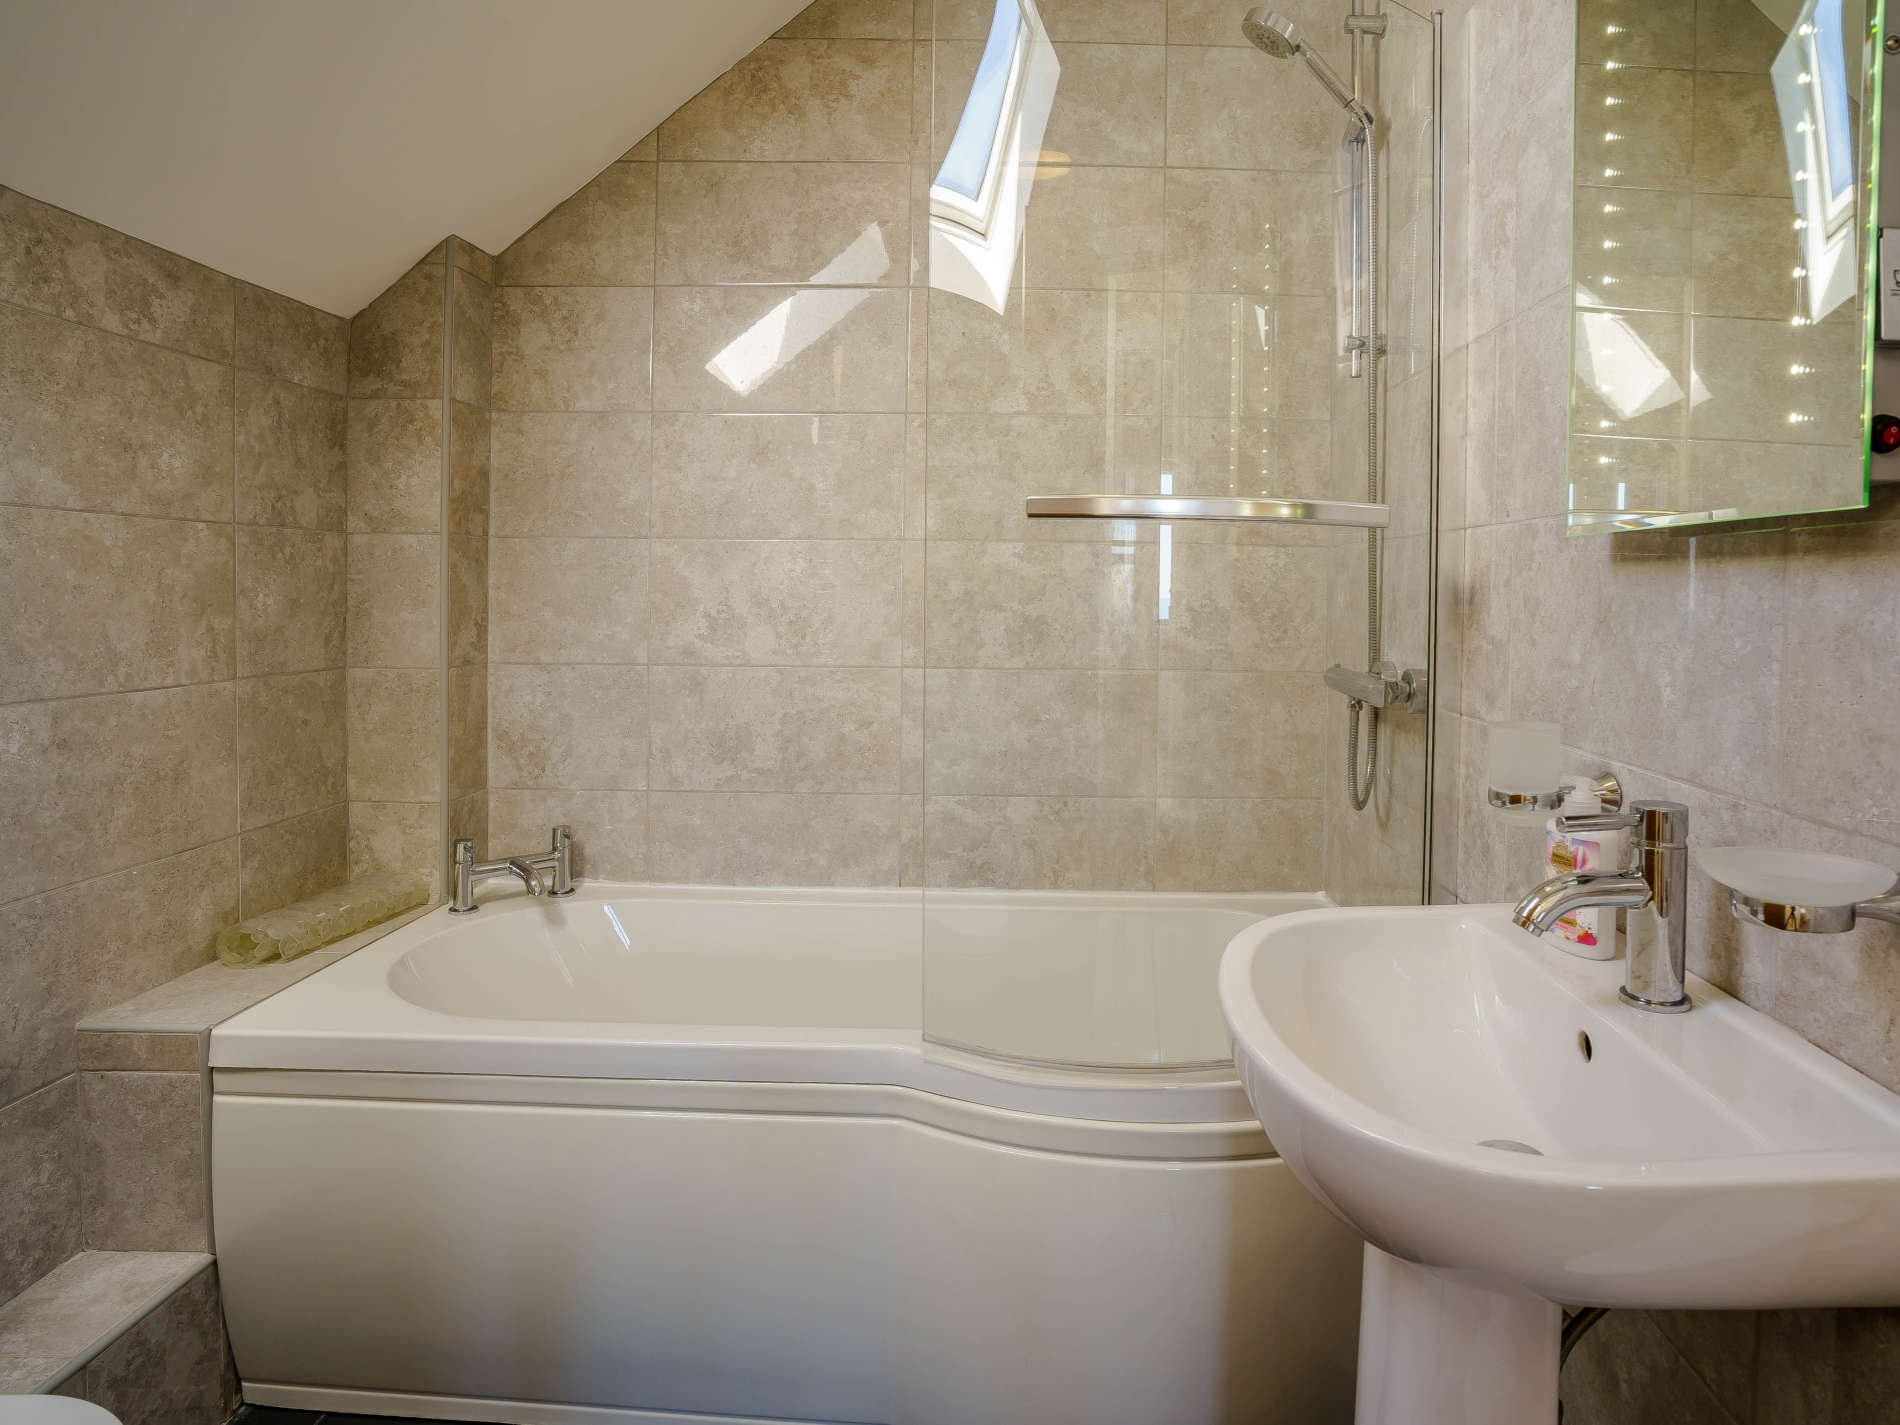 3 Bedroom Cottage in Cardigan, Mid Wales